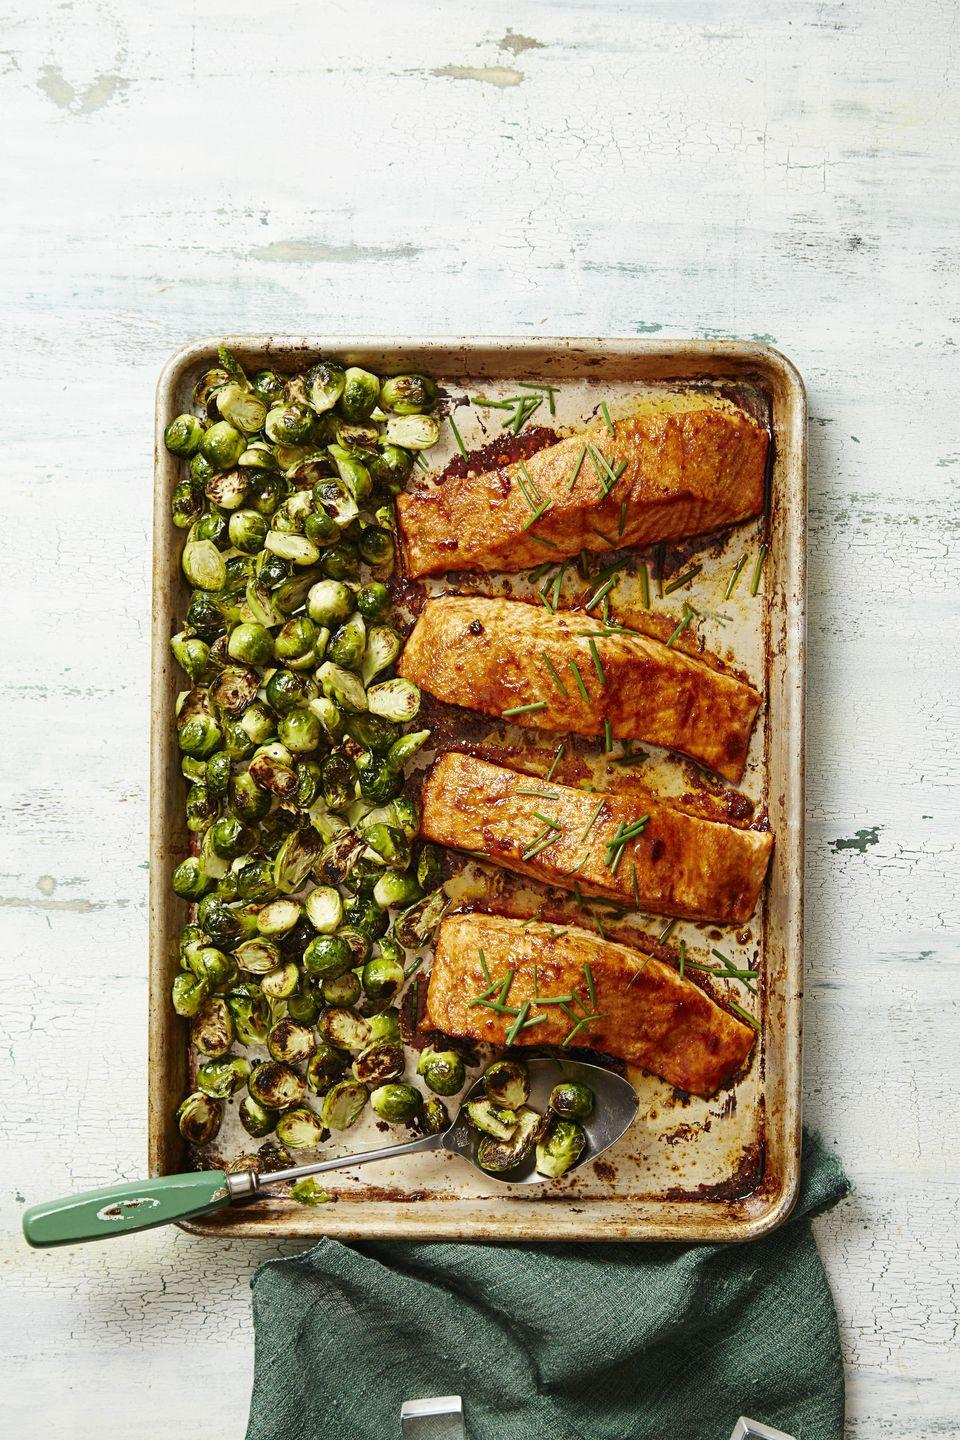 "<p>Roast the Brussels sprouts and salmon on the same baking sheet, and you'll have less dishes to clean later.</p><p><em><a href=""https://www.goodhousekeeping.com/food-recipes/a37311/bbq-salmon-brussels-bake-recipe/"" rel=""nofollow noopener"" target=""_blank"" data-ylk=""slk:Get the recipe for &quot;BBQ&quot; Salmon and Brussels Bake »"" class=""link rapid-noclick-resp"">Get the recipe for ""BBQ"" Salmon and Brussels Bake »</a></em> </p><p><strong>RELATED:</strong> <a href=""https://www.goodhousekeeping.com/food-recipes/healthy/g817/healthy-salmon-dinners/"" rel=""nofollow noopener"" target=""_blank"" data-ylk=""slk:16 Salmon Dinners That Are Super Healthy"" class=""link rapid-noclick-resp"">16 Salmon Dinners That Are Super Healthy</a></p>"